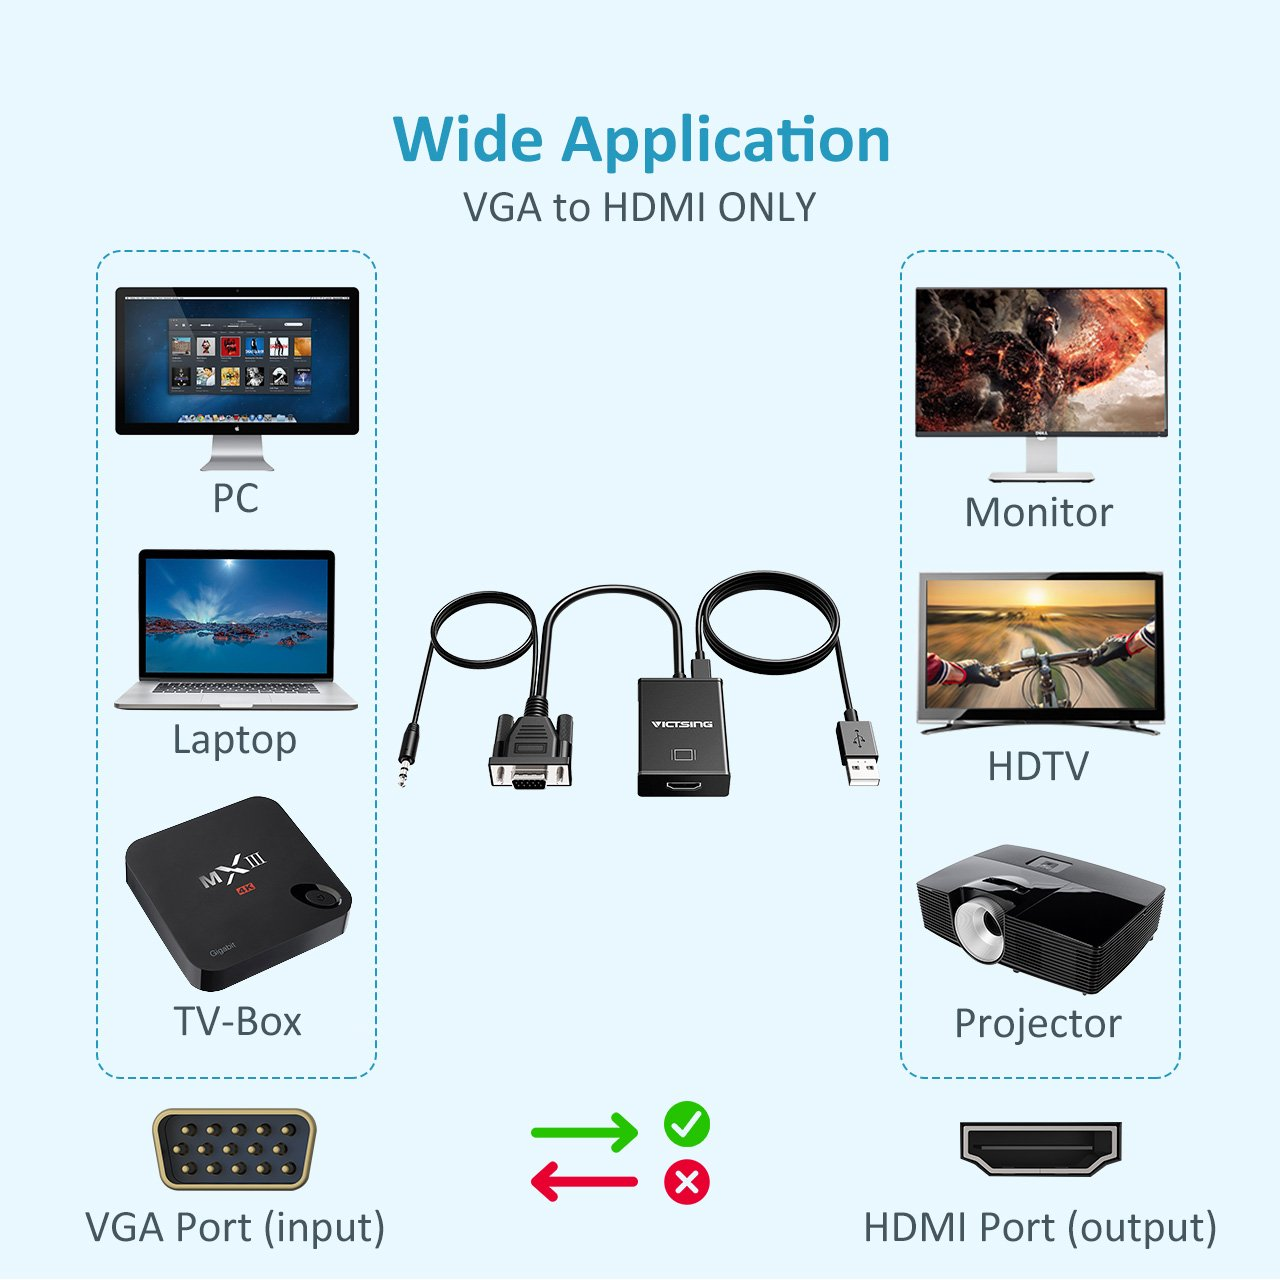 Victsing Vga To Hdmi Converter Adapter Output 1080p Male Full Hd And Audio For Hdtv Monitor Projector Konverter Kabel Female Video Cable Av Supply A Free Usb